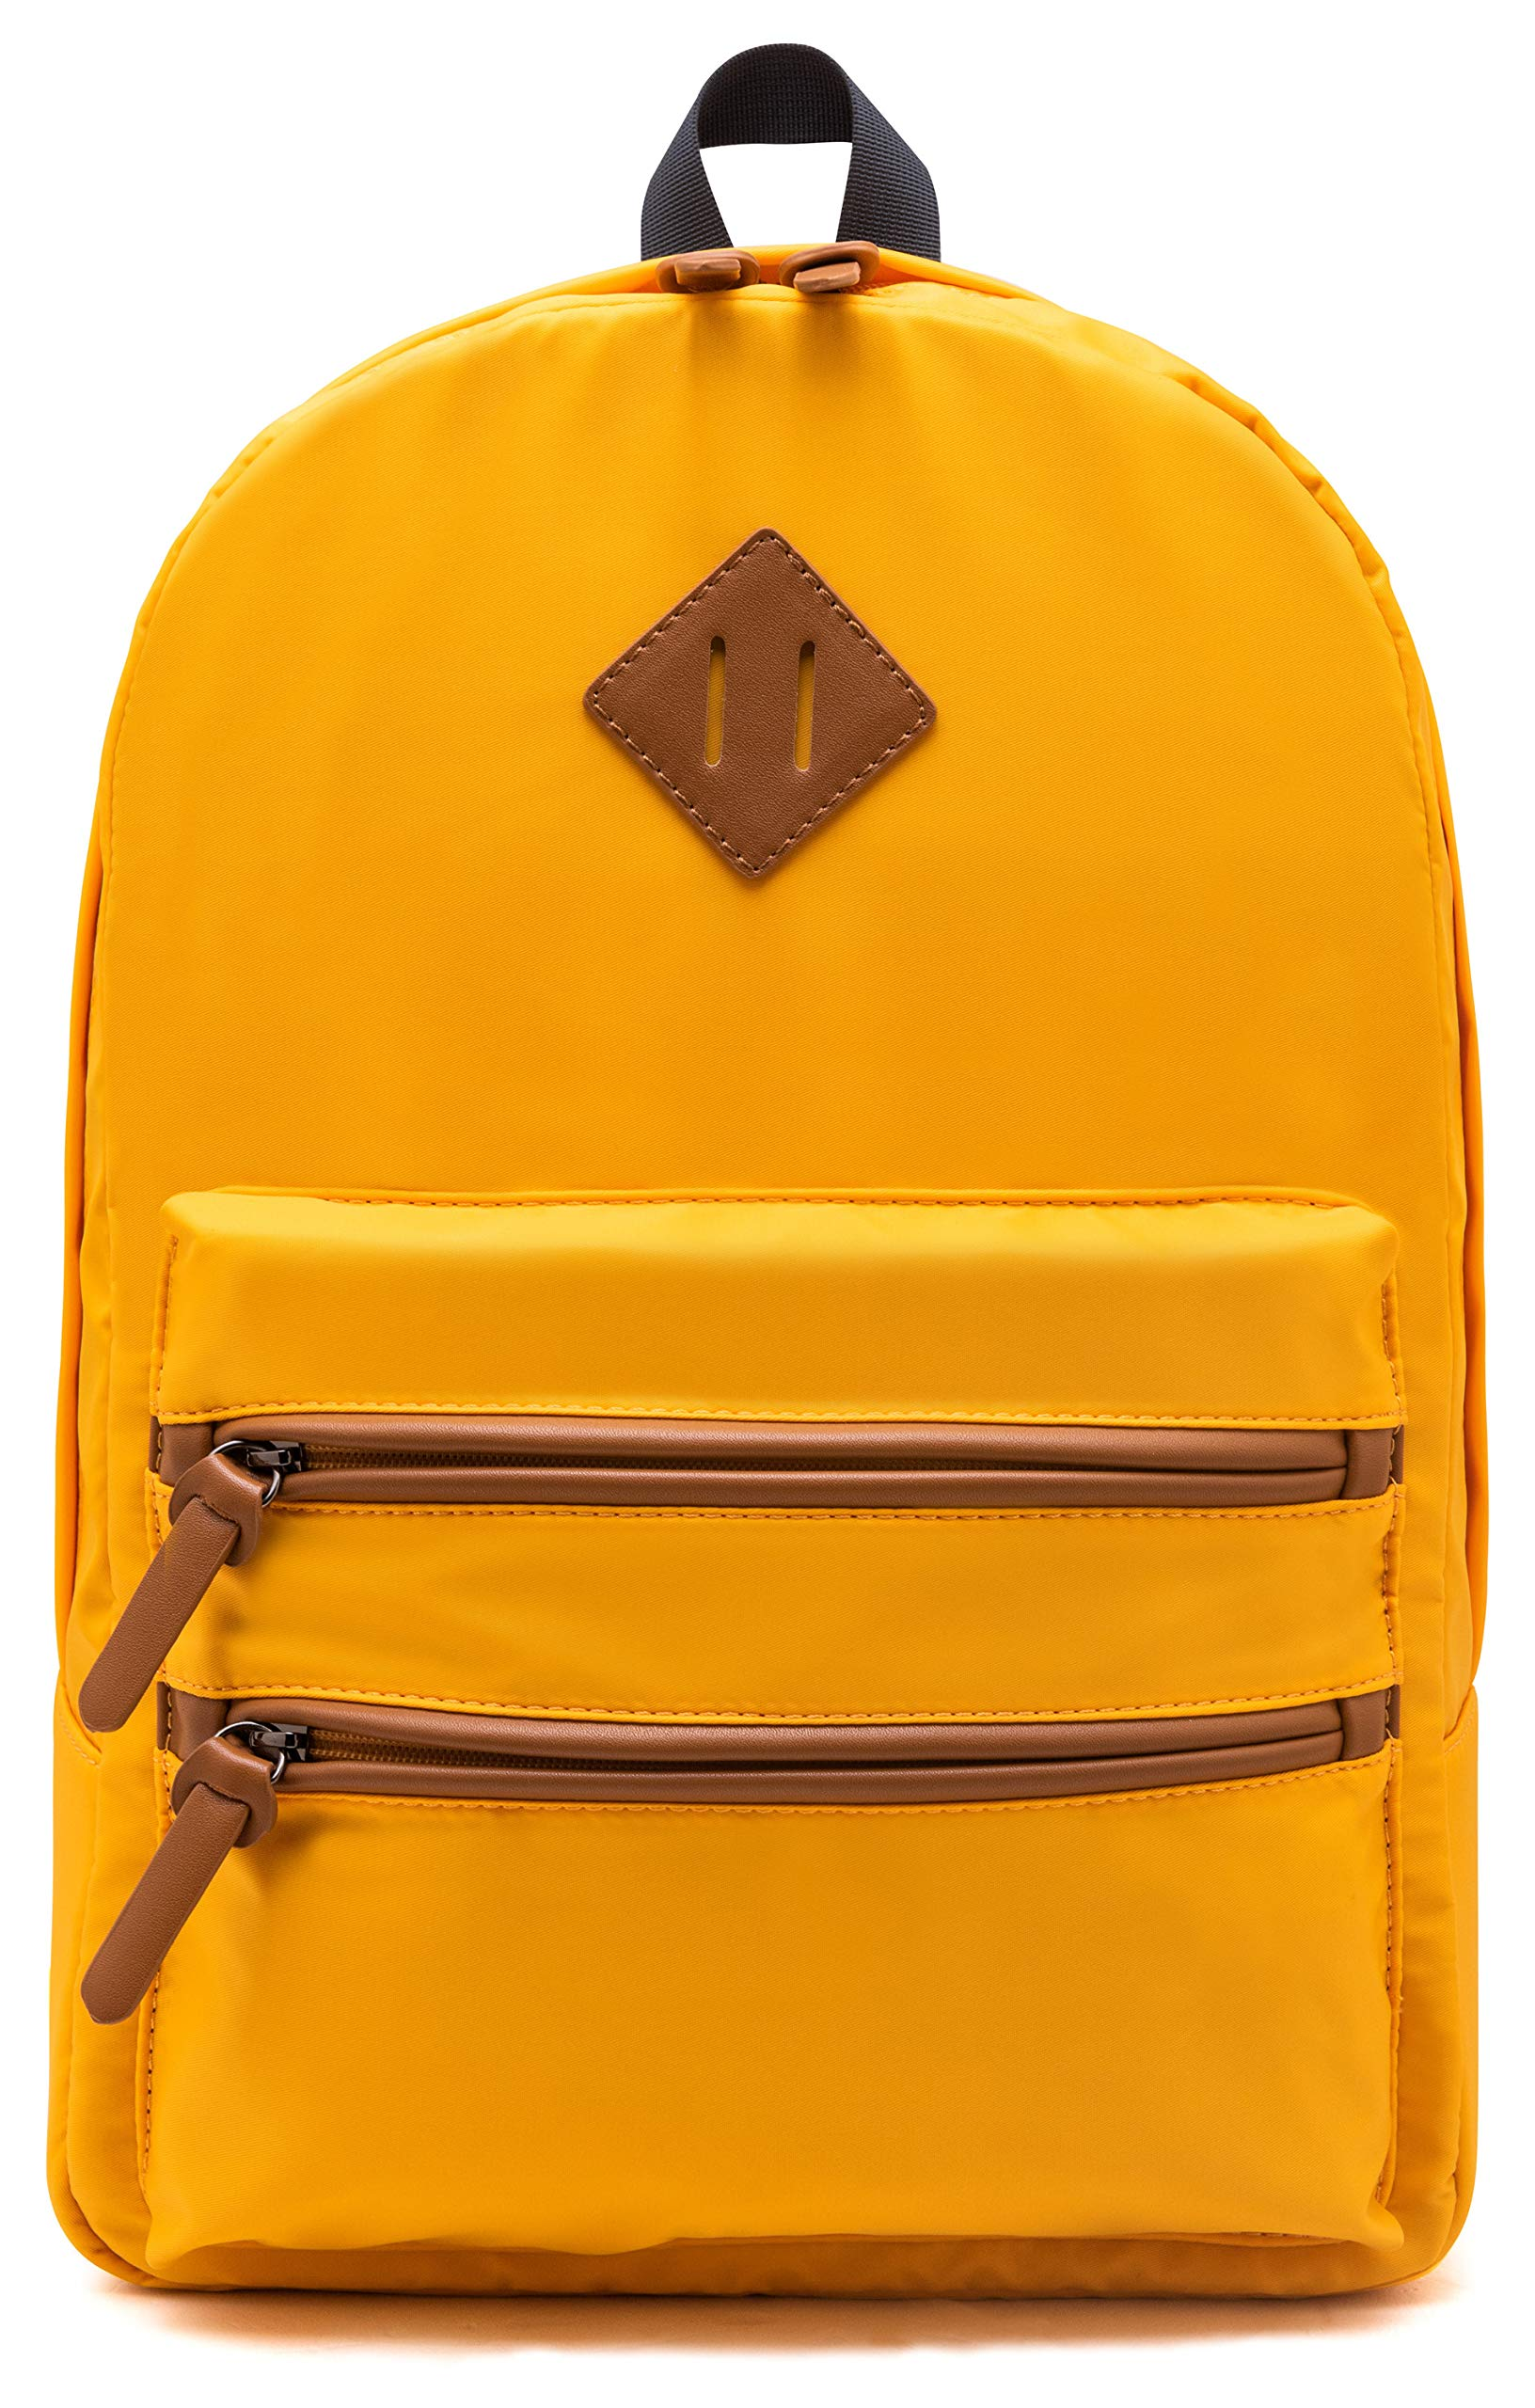 Gysan Lightweight Water Resistant College Backpack Book Bags Travel Rucksack Fit 15 Inch, Golden Yellow by Gysan